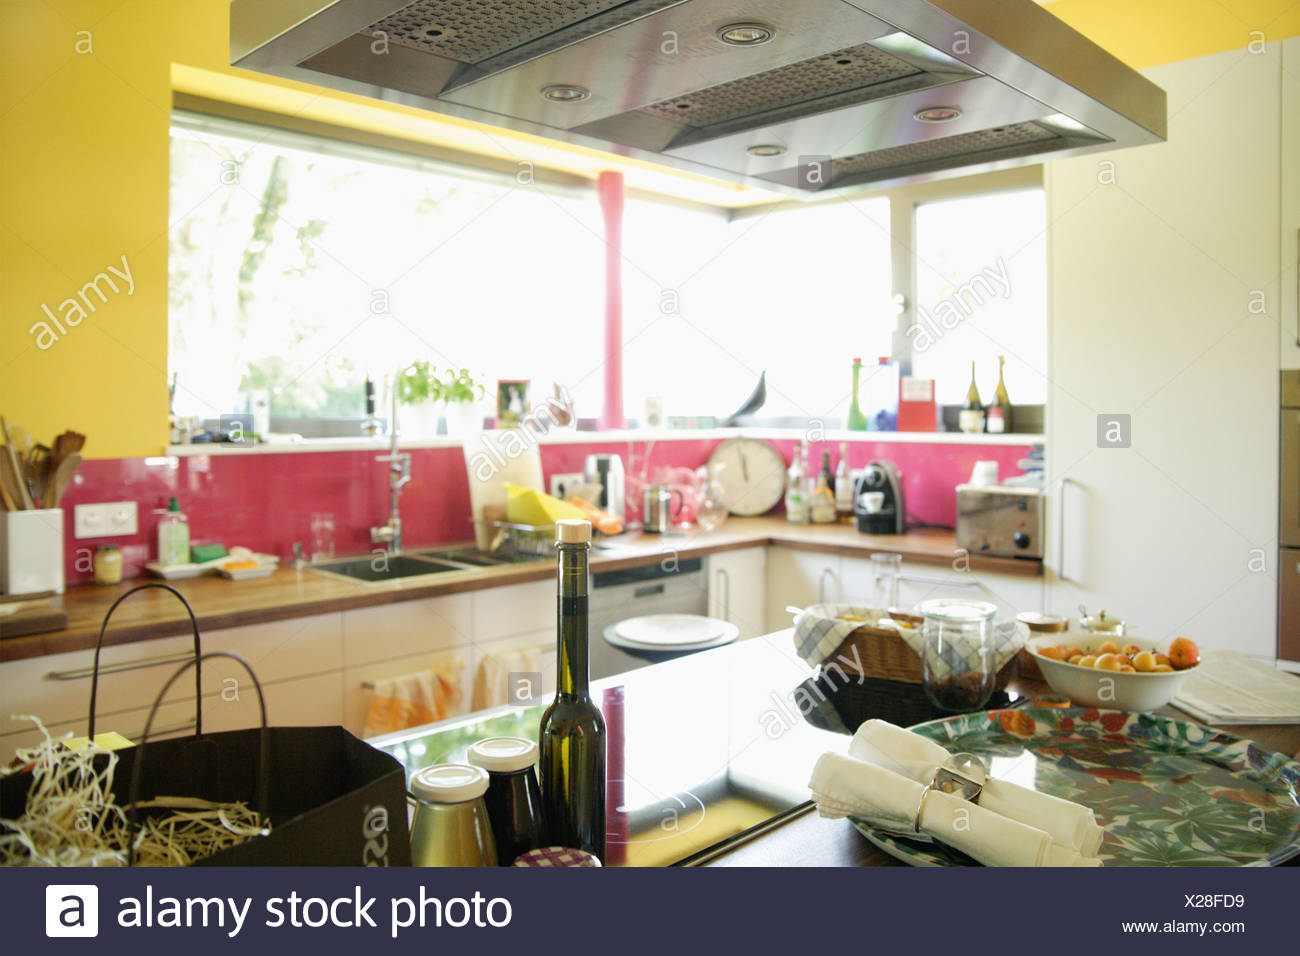 germany kitchen house stock photos germany kitchen house stock images alamy. Black Bedroom Furniture Sets. Home Design Ideas